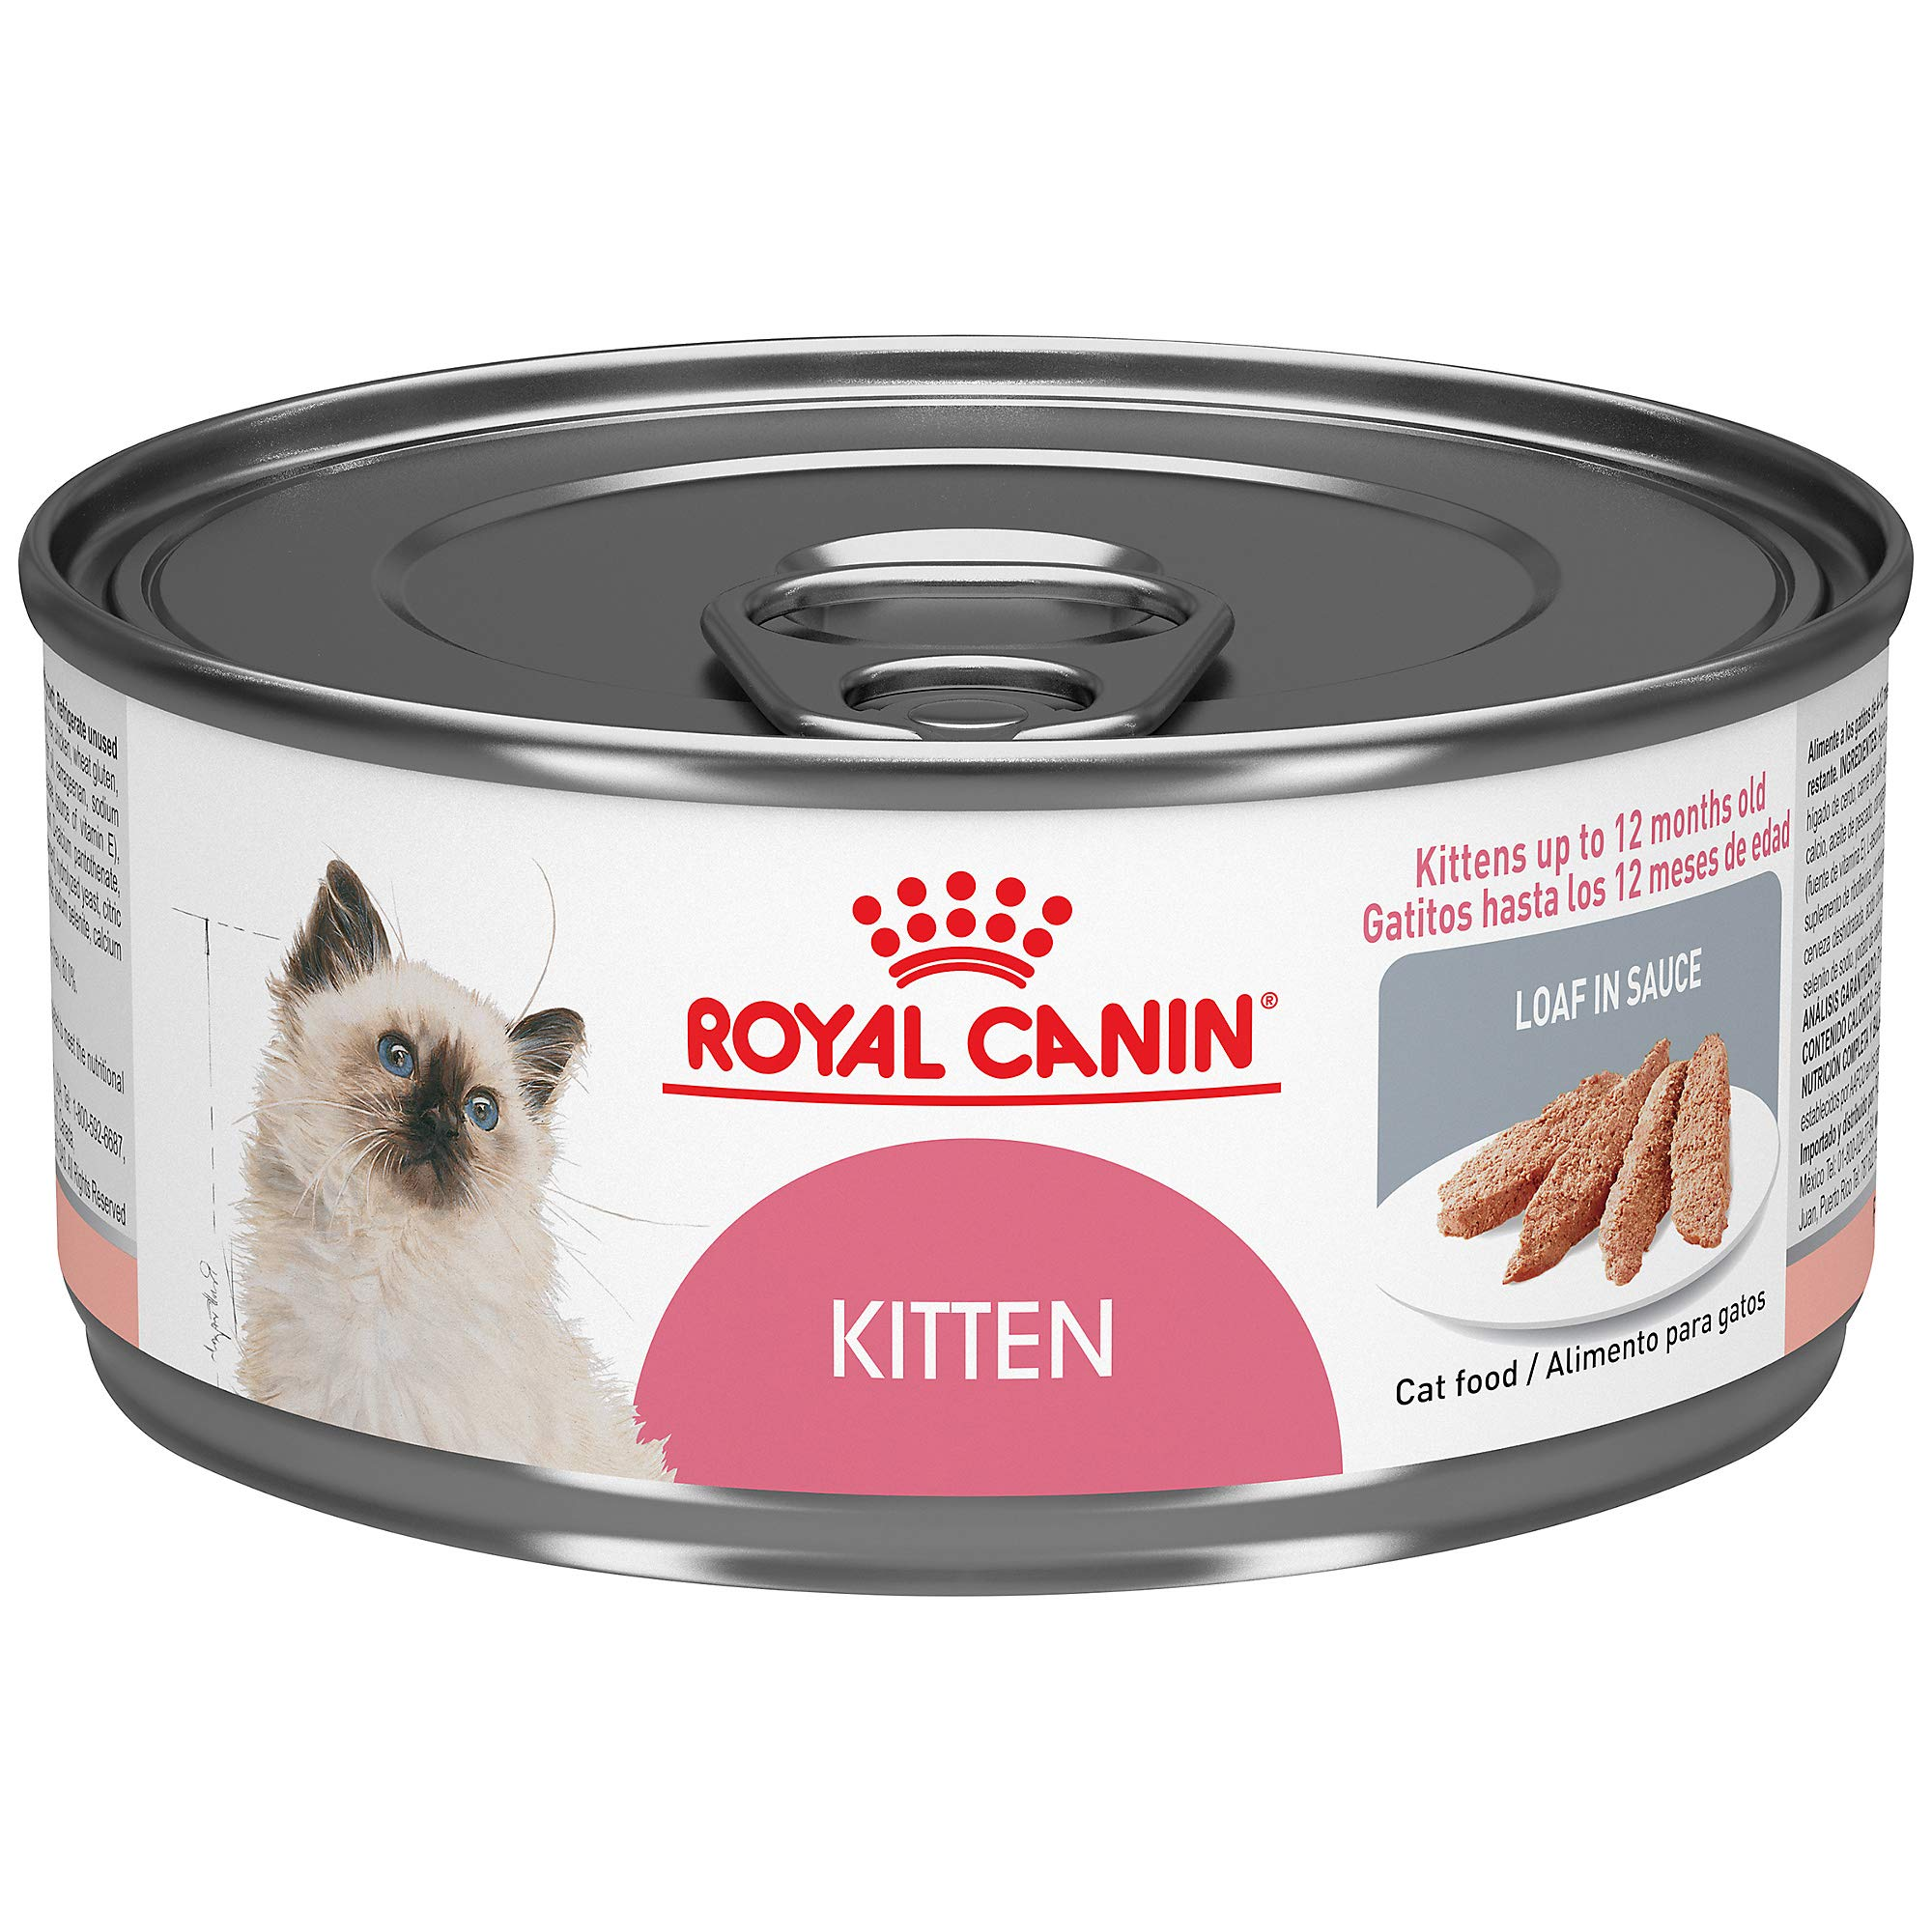 Royal Canin Feline Health Nutrition Loaf in Sauce Wet Kitten Food, 5.8 Ounce Can (Pack of 24) by Royal Canin